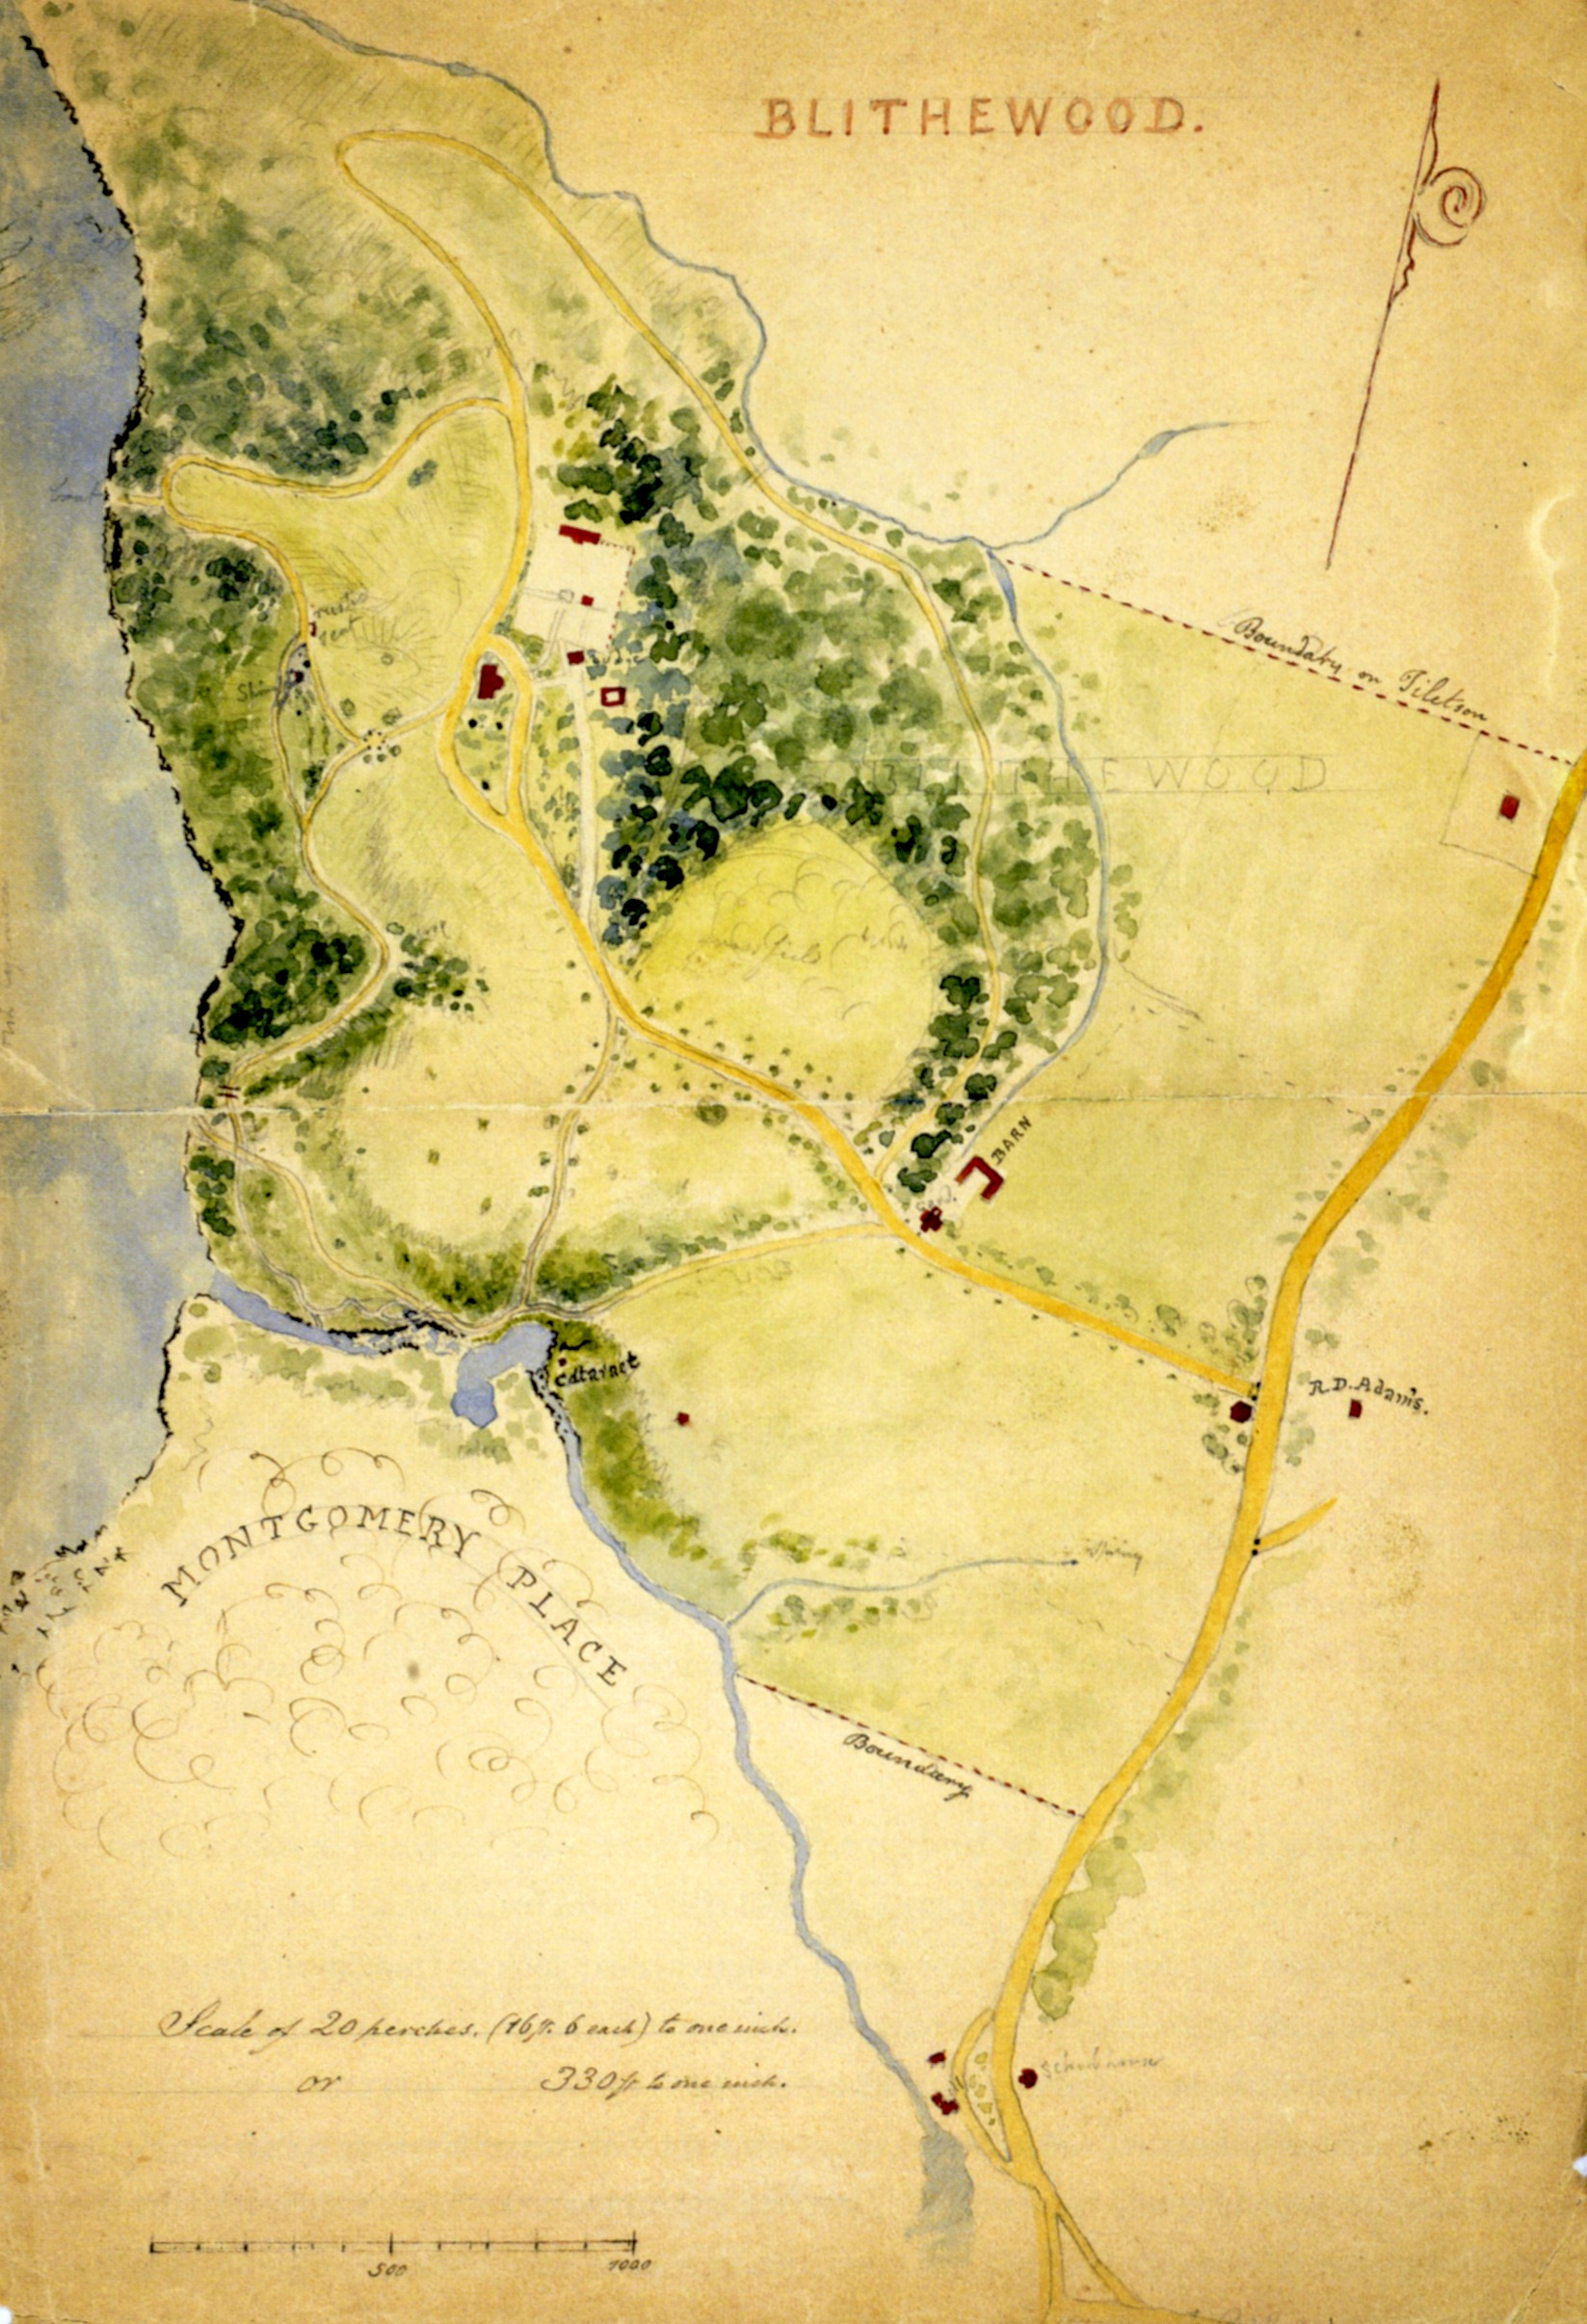 Watercolor map of Blithewood